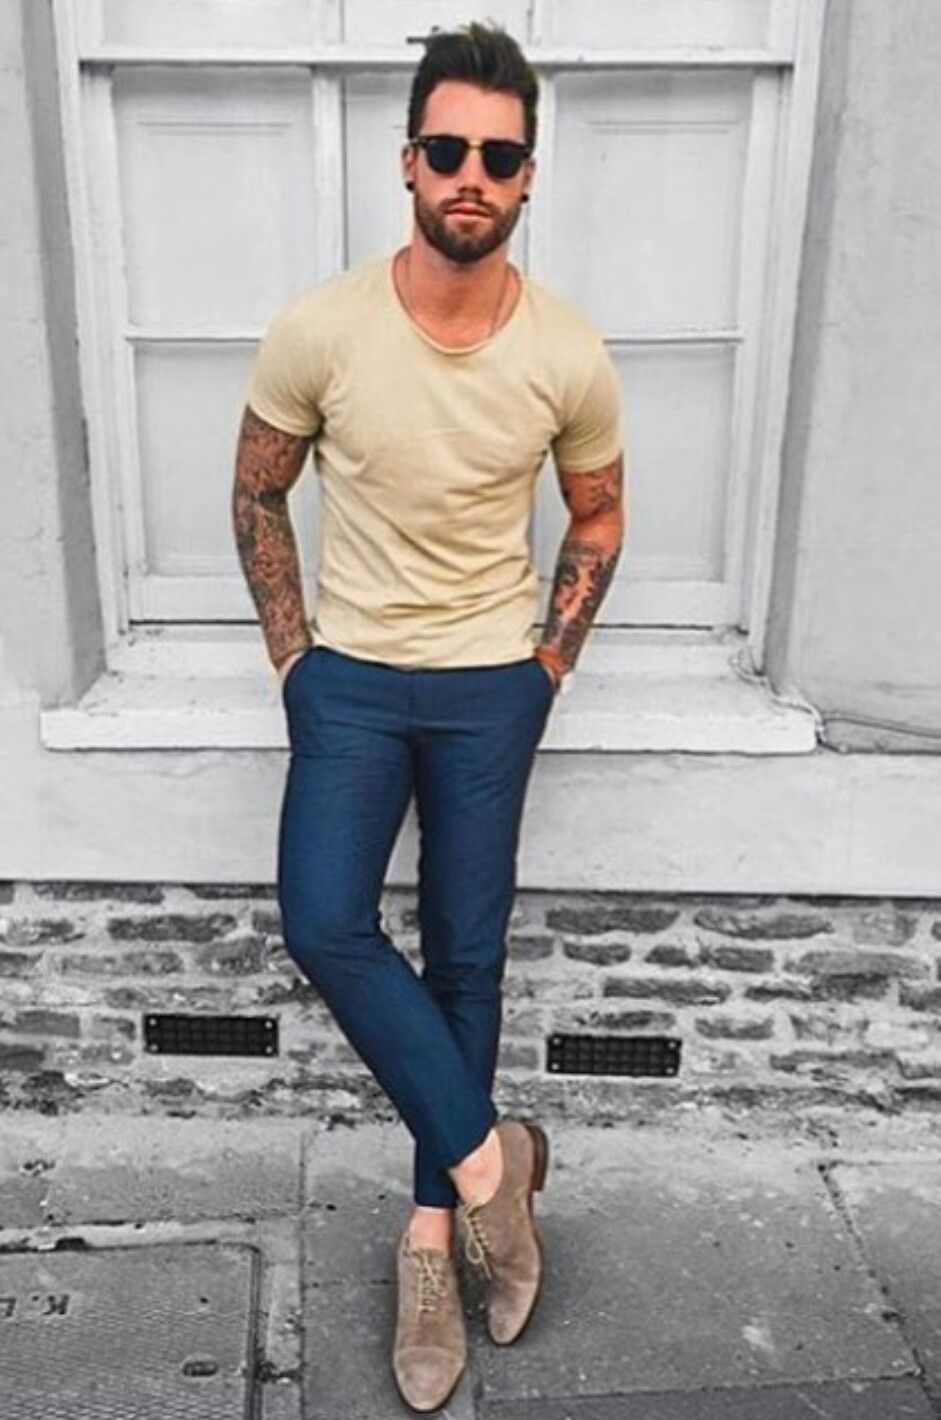 to wear - Clothing summer styles for men photo video